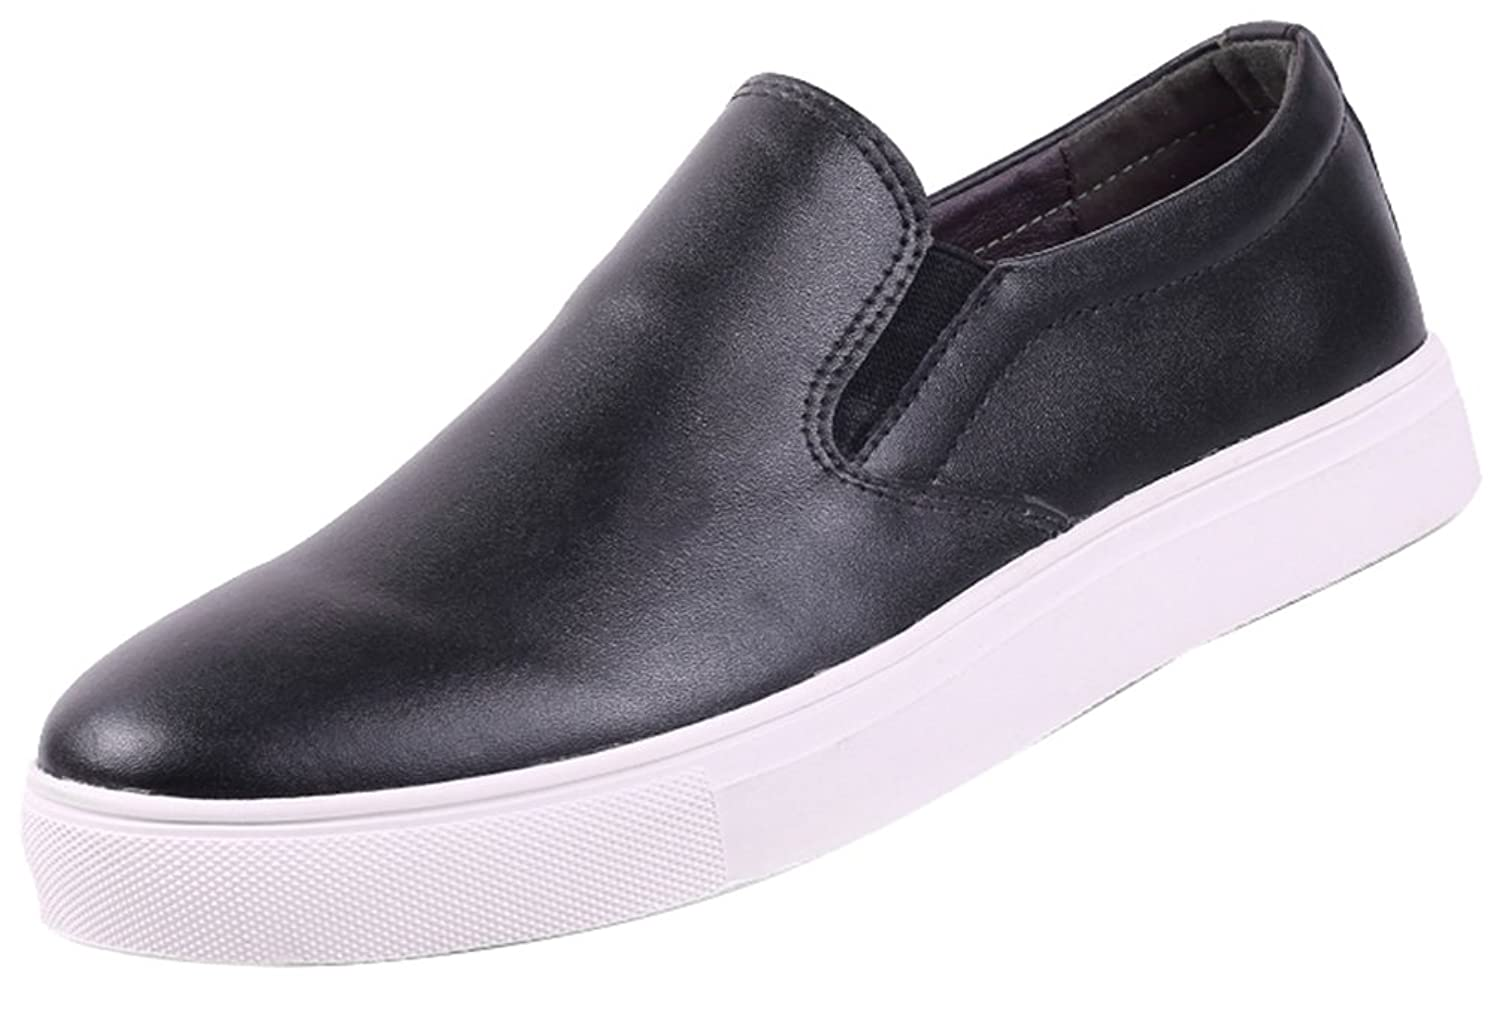 FJQY-5086 New Mens Casual Leather Charming Comfy Leisure Slip On Concise Driving Shoes